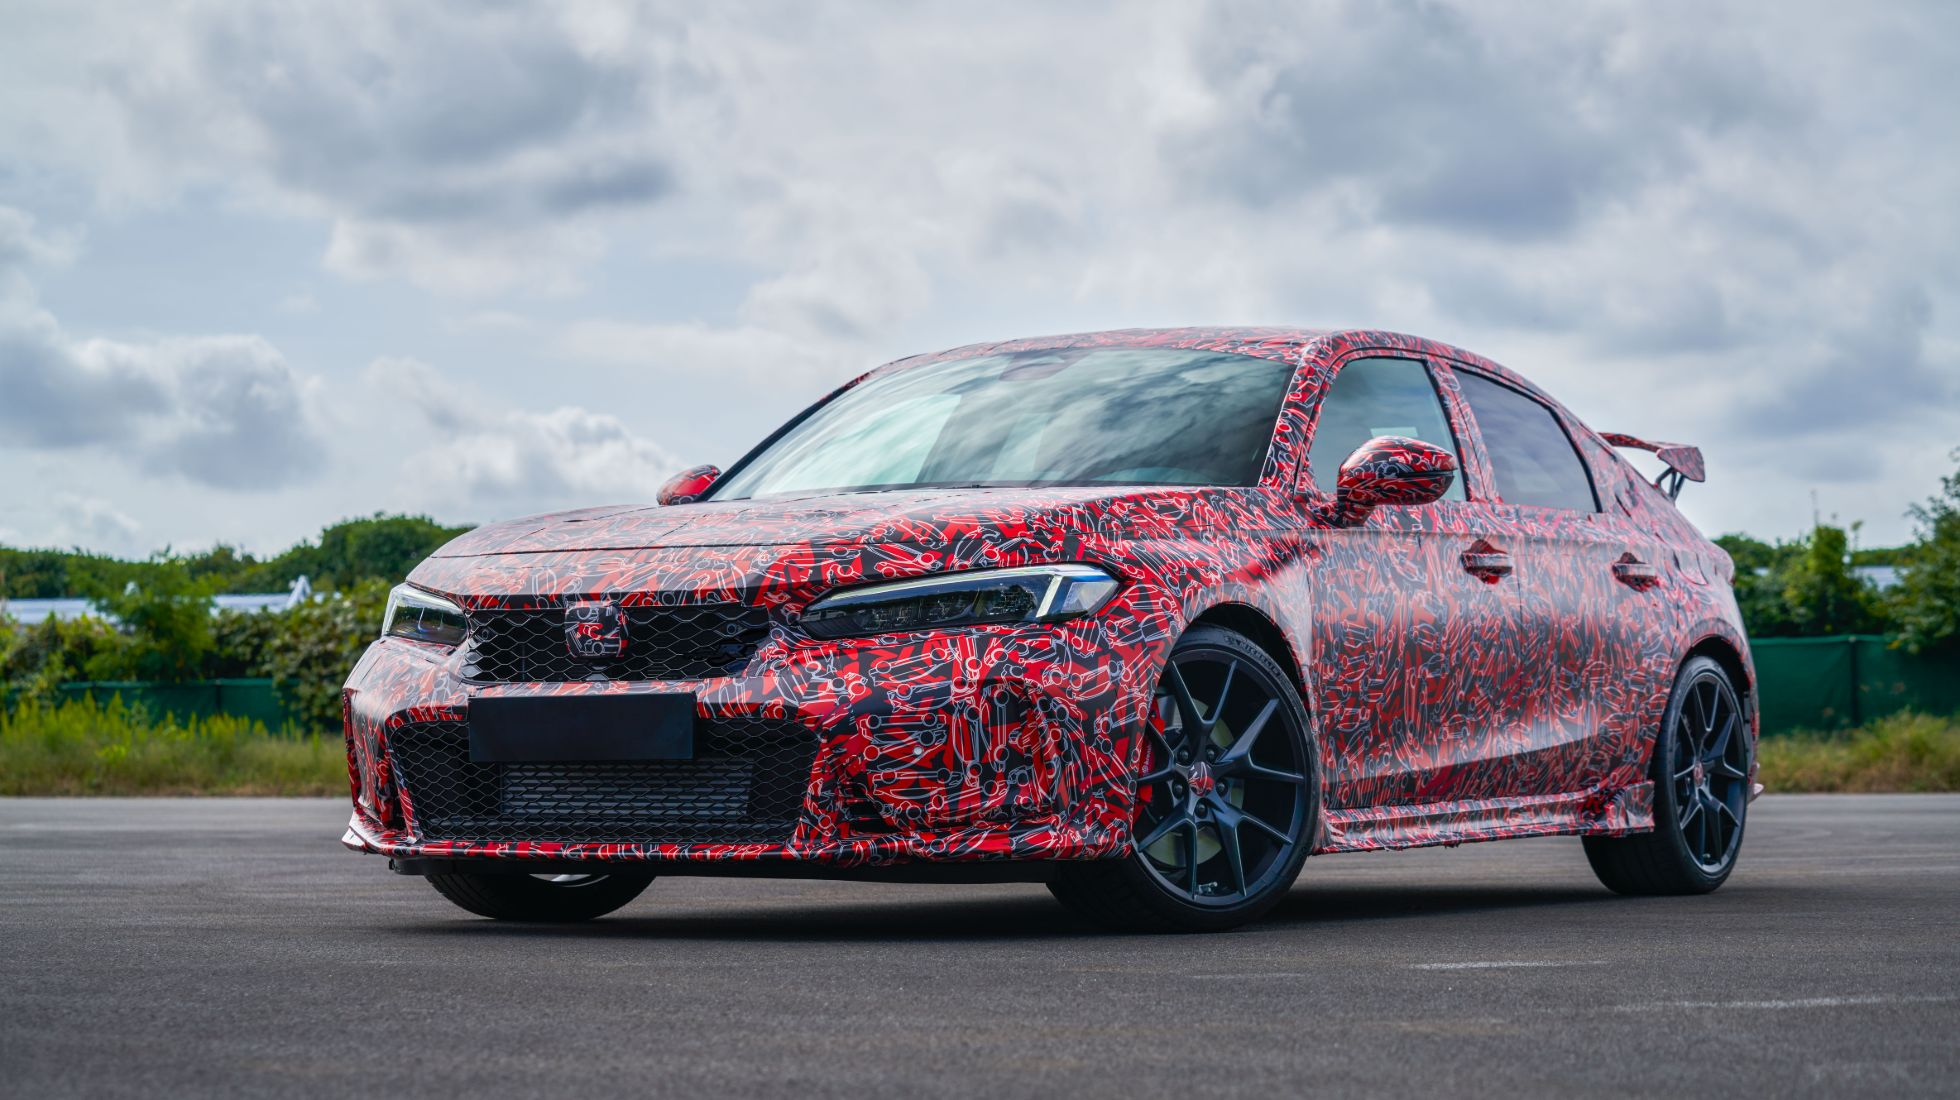 Honda Civic Type R ready to flex its muscles